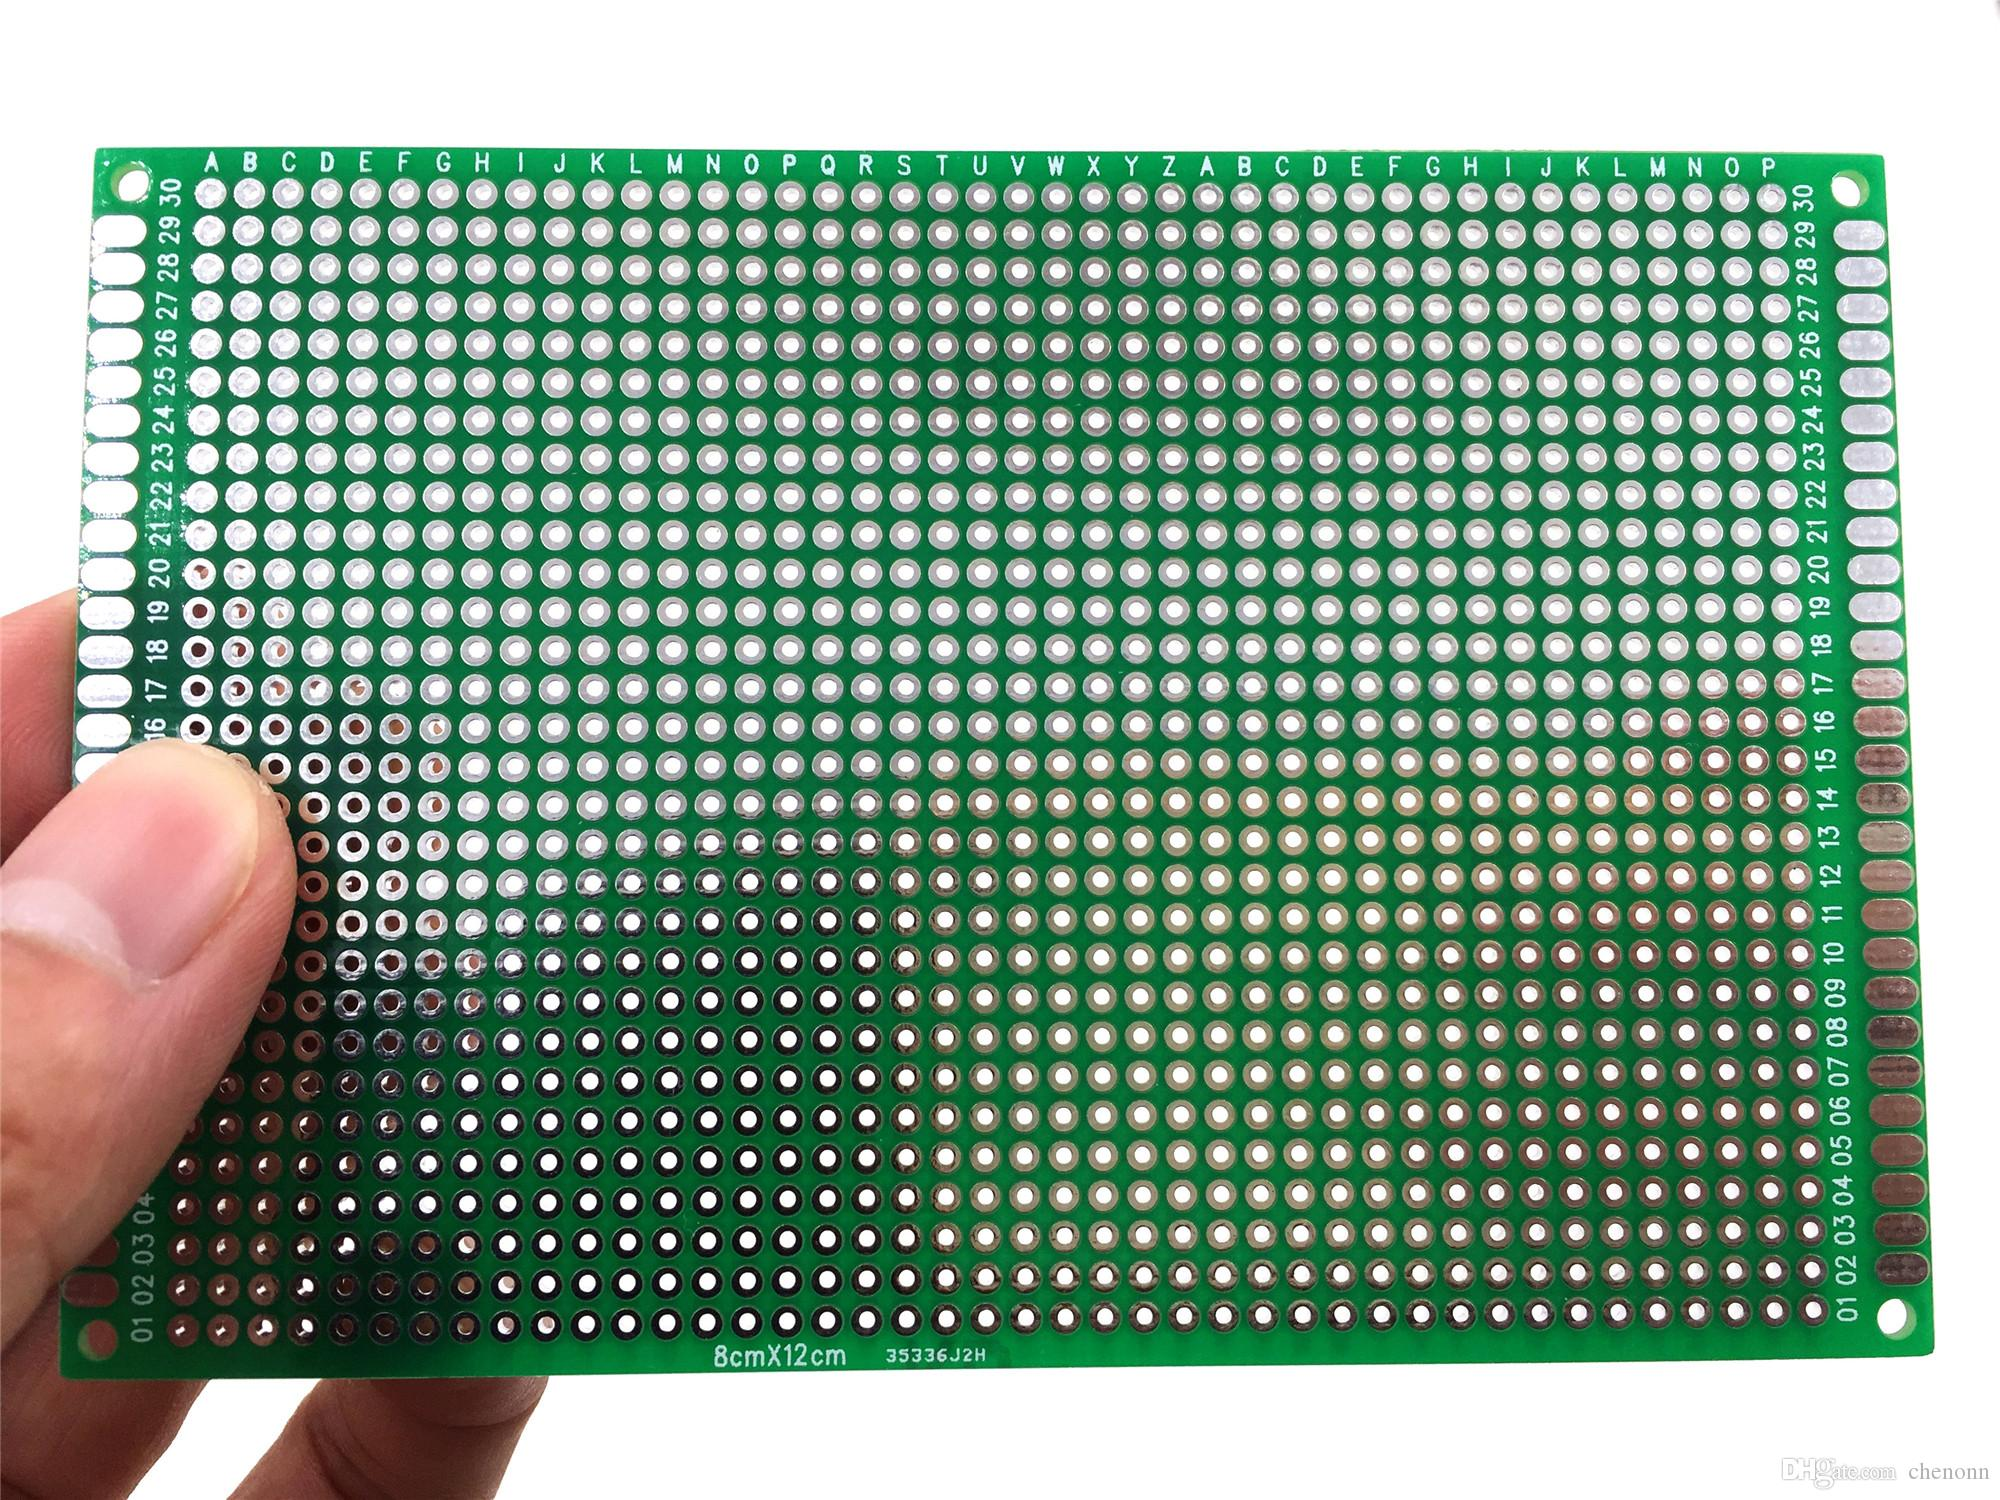 8x12 Cm Double Sided Universal Pcb Diy Breadboards Random Or Singlesided Copper Clad Fr4 Epoxy Sheet For Printed Circuit Board Shipments Online With 40 Piece On Chenonns Store